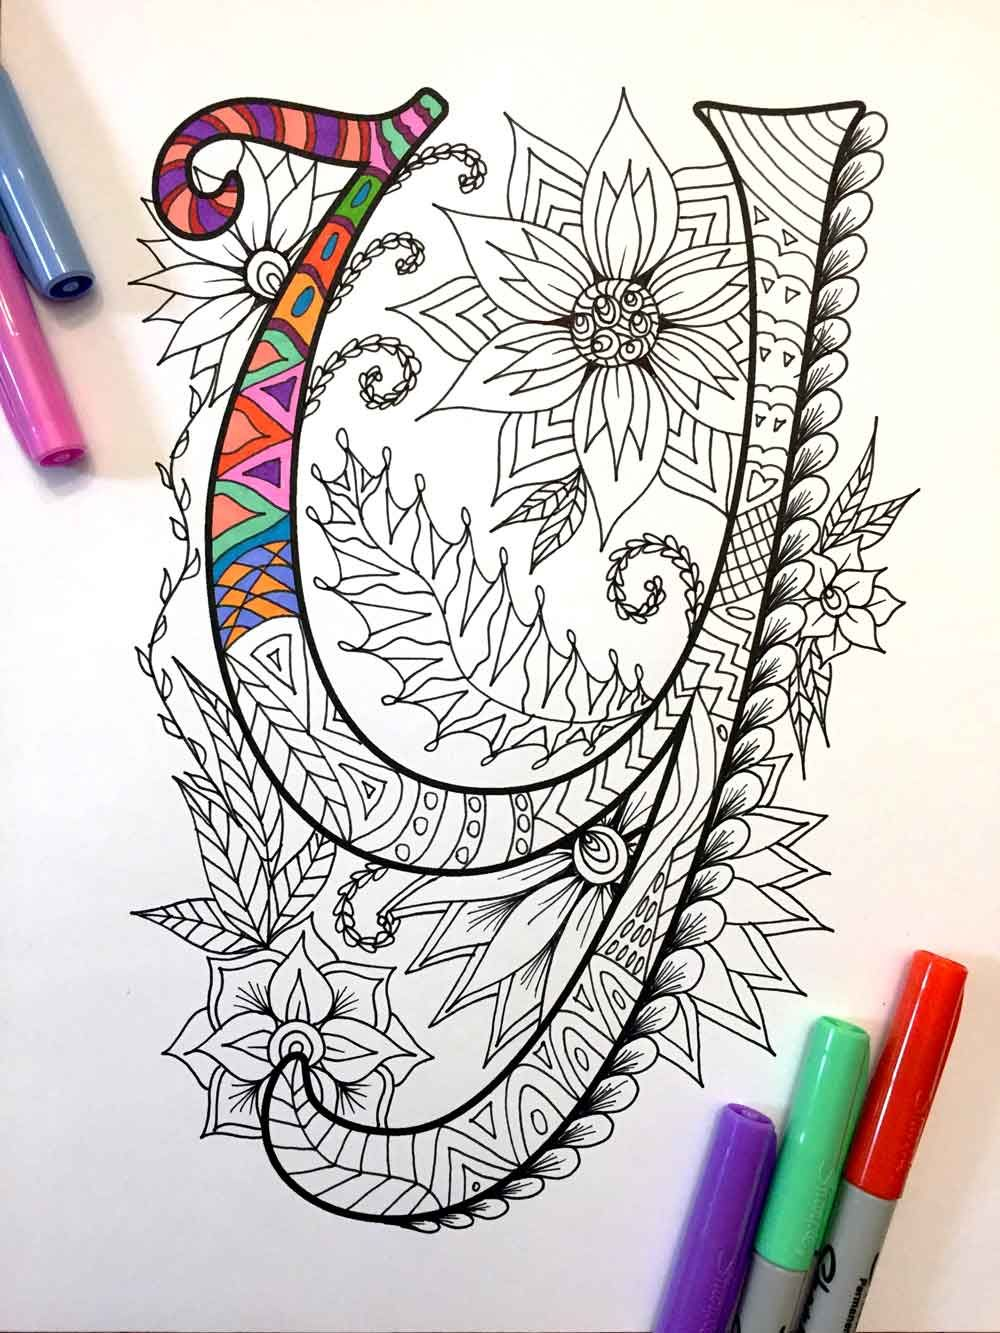 Scribbles Alphabet And Numbers Coloring Book In 2020 Zentangle Patterns Lettering Lettering Alphabet